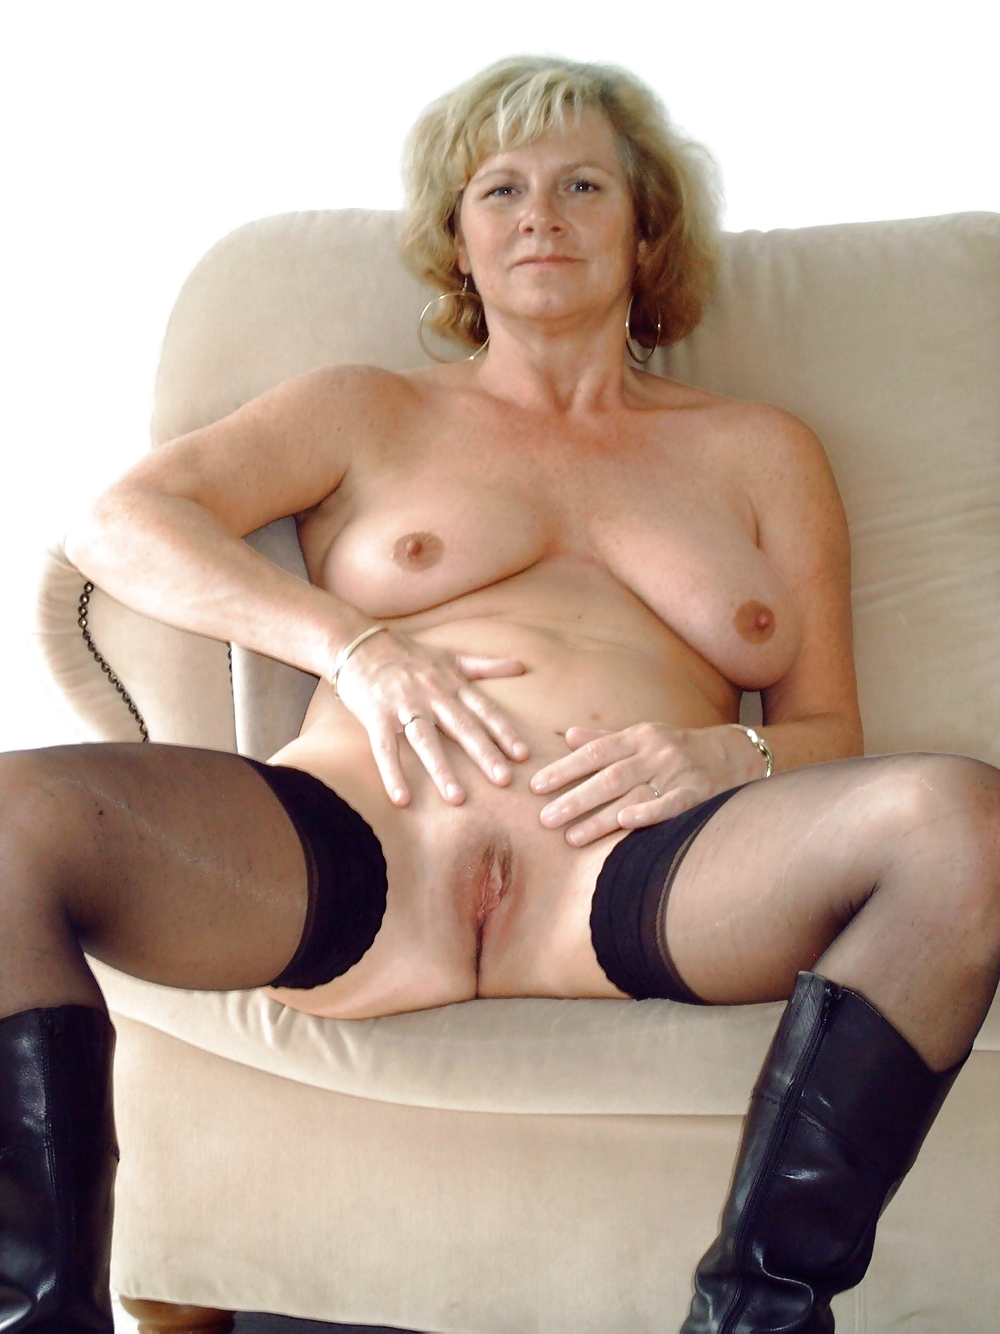 RED HOT HORNY AMATEUR MATURES & MILFS #4471628